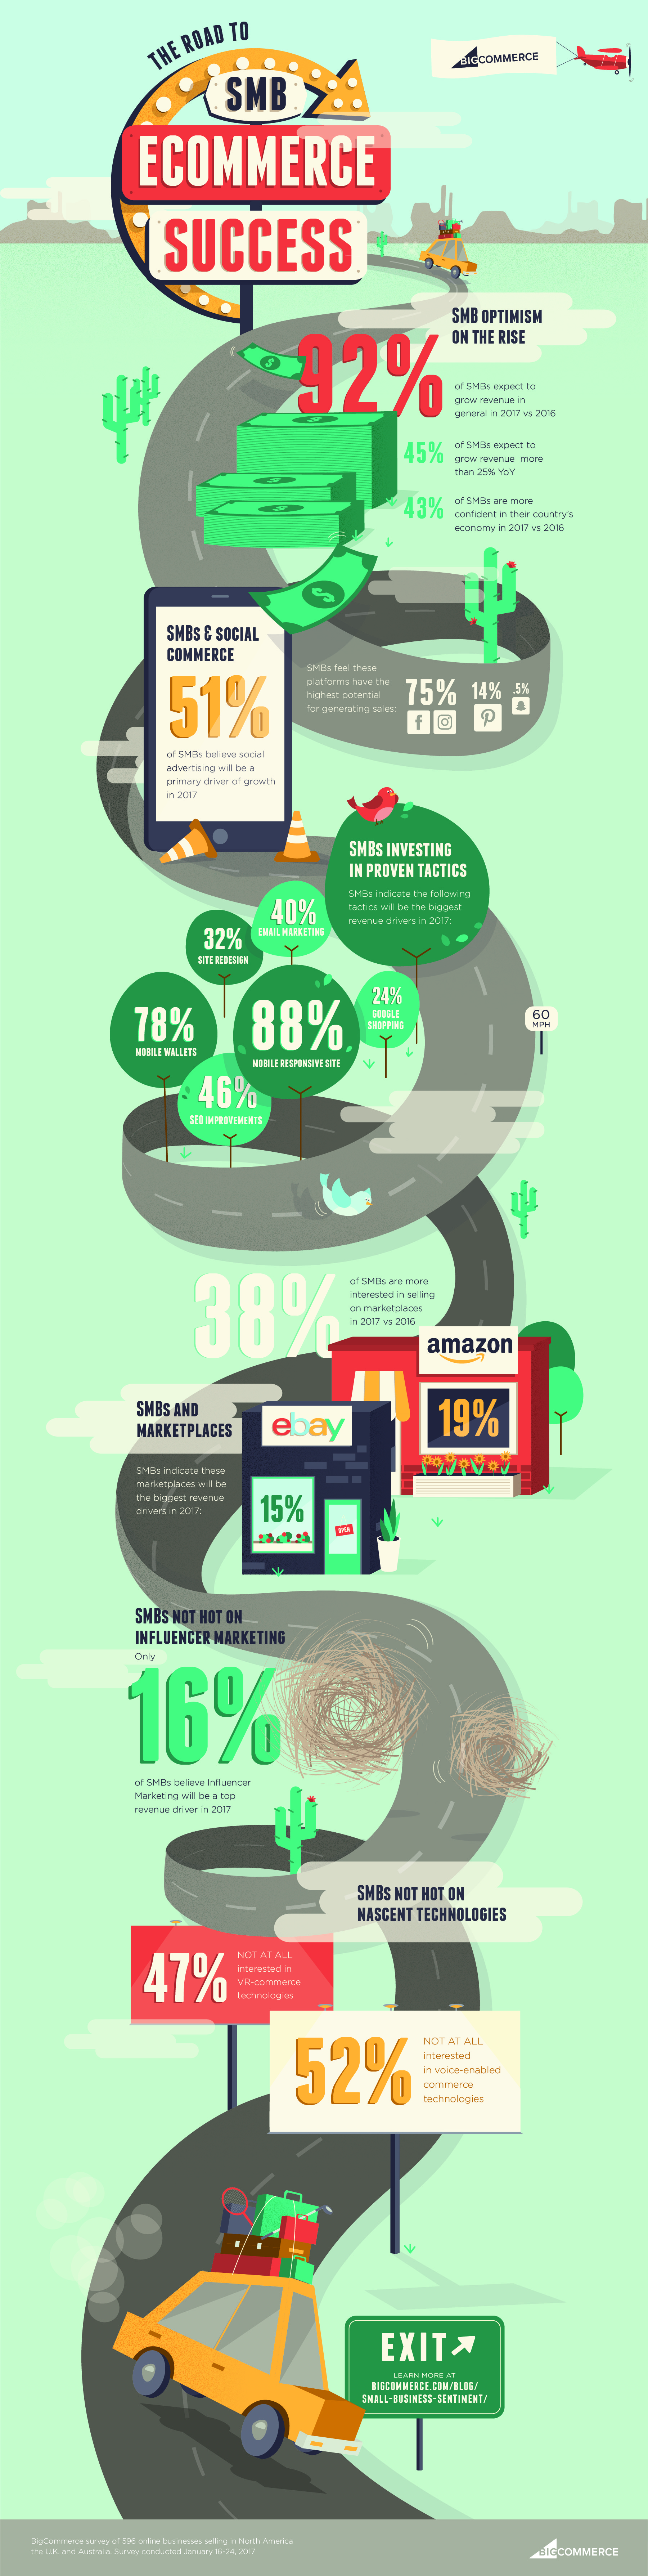 BigCommerce-small-business-success-2017-infographic.jpg